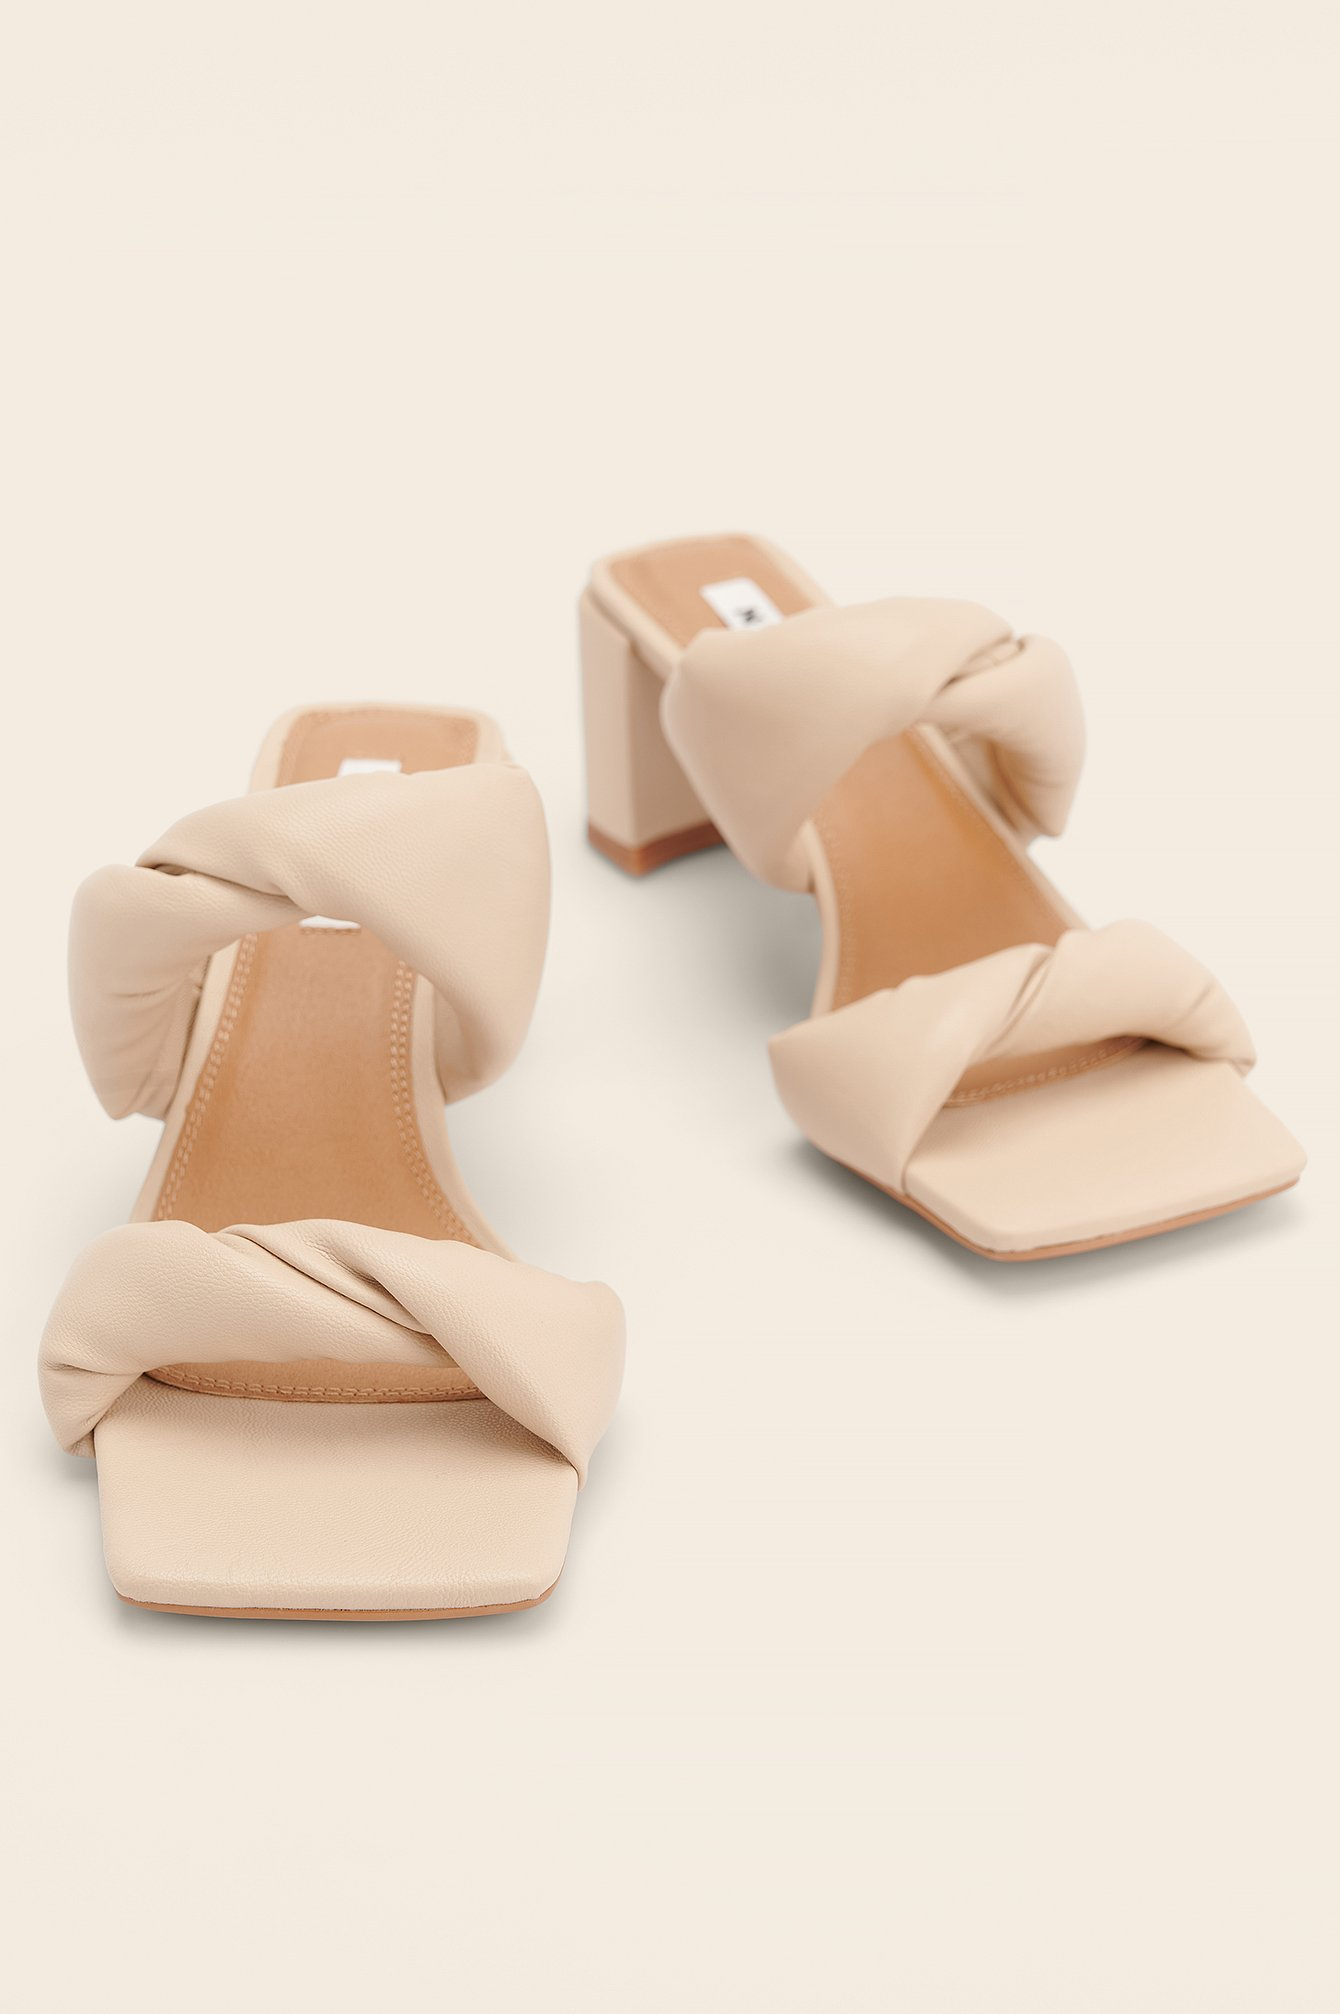 Twisted Squared Toe Mules  $47.95